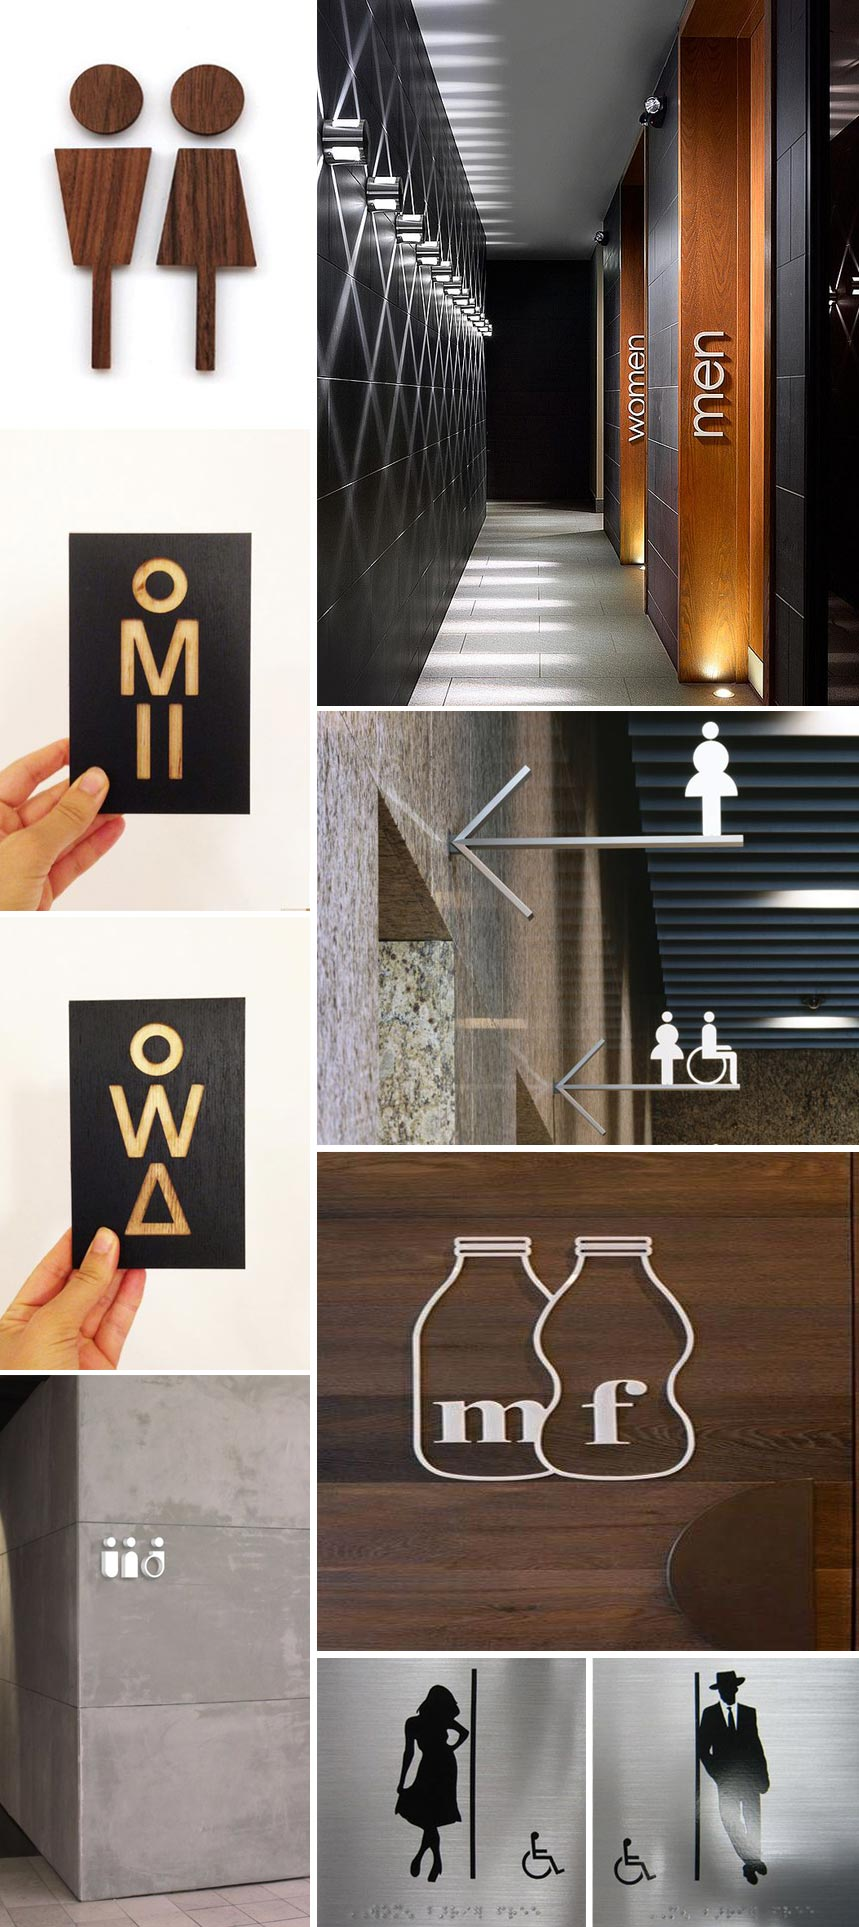 Stylish-Toilet-signs-brown-ink-Blog